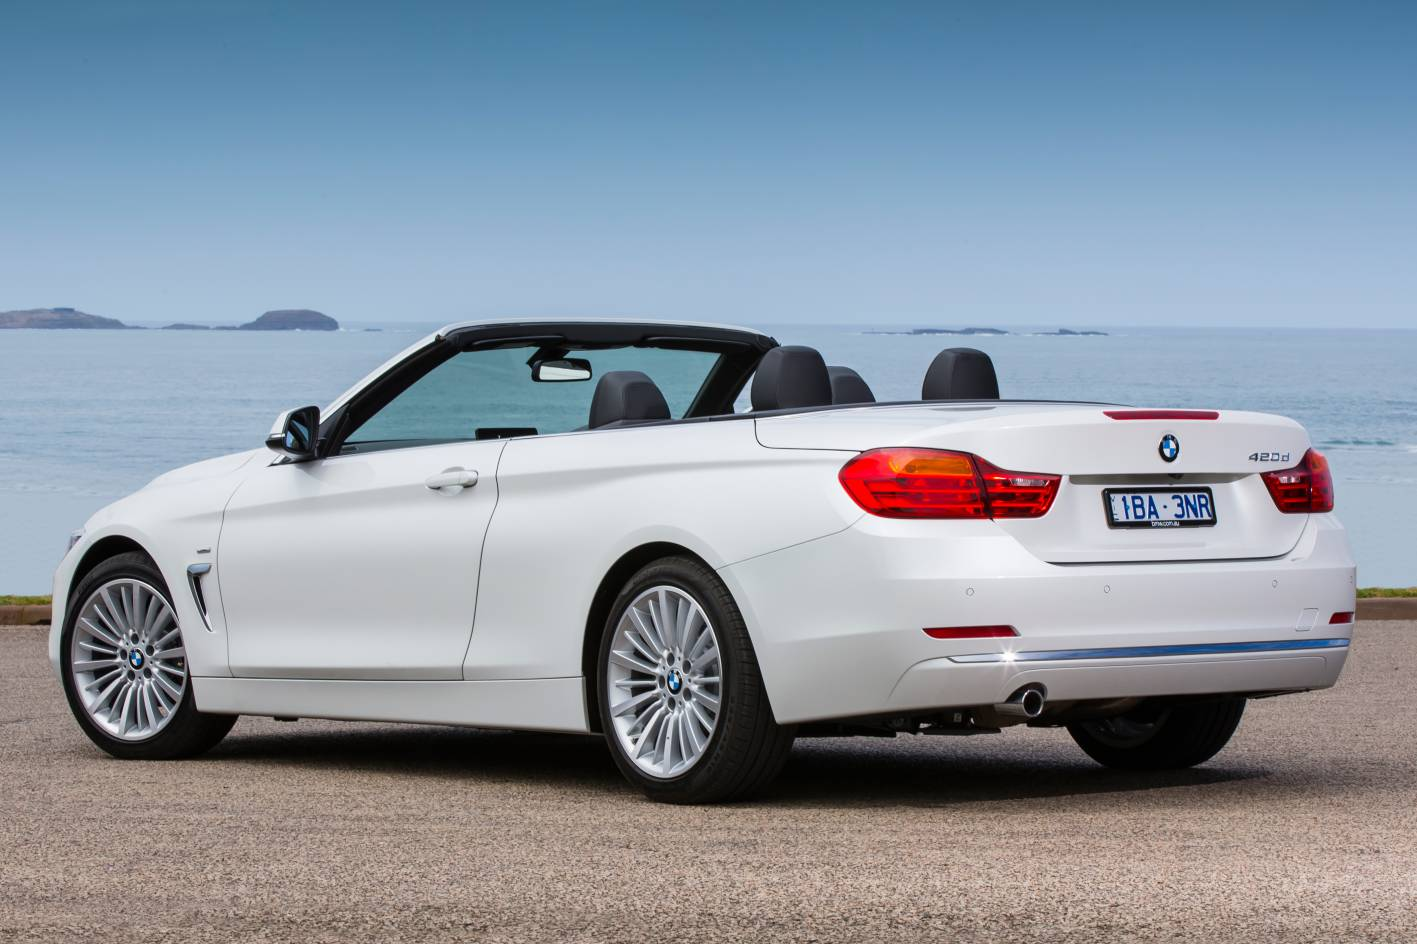 BMW Convertible bmw 4 series convertible white 2014-BMW-4-Series-Convertible-420d-rear-quarter - ForceGT.com